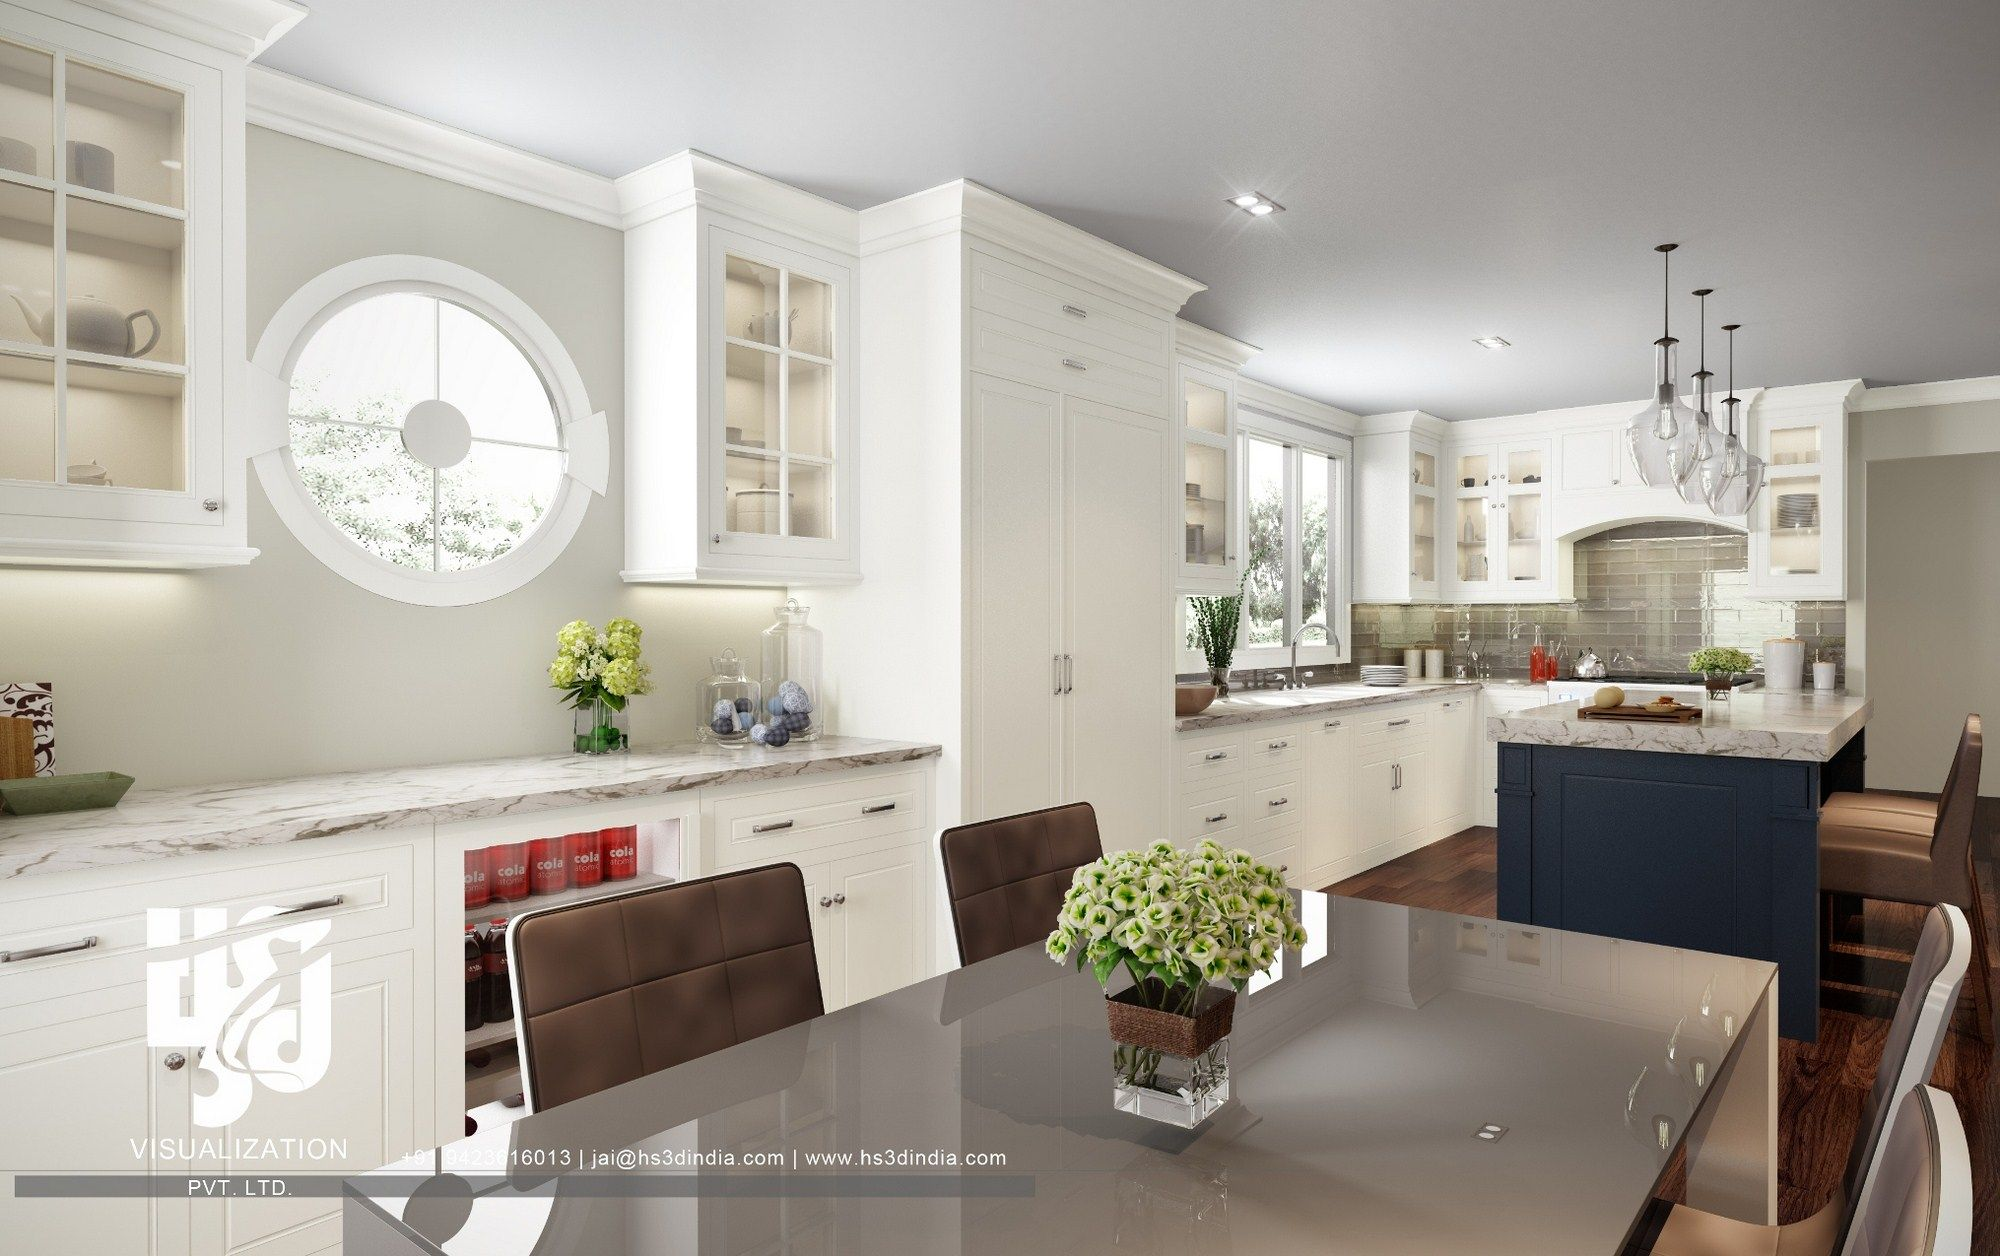 Visualization is expert in architectural rendering walkthrough